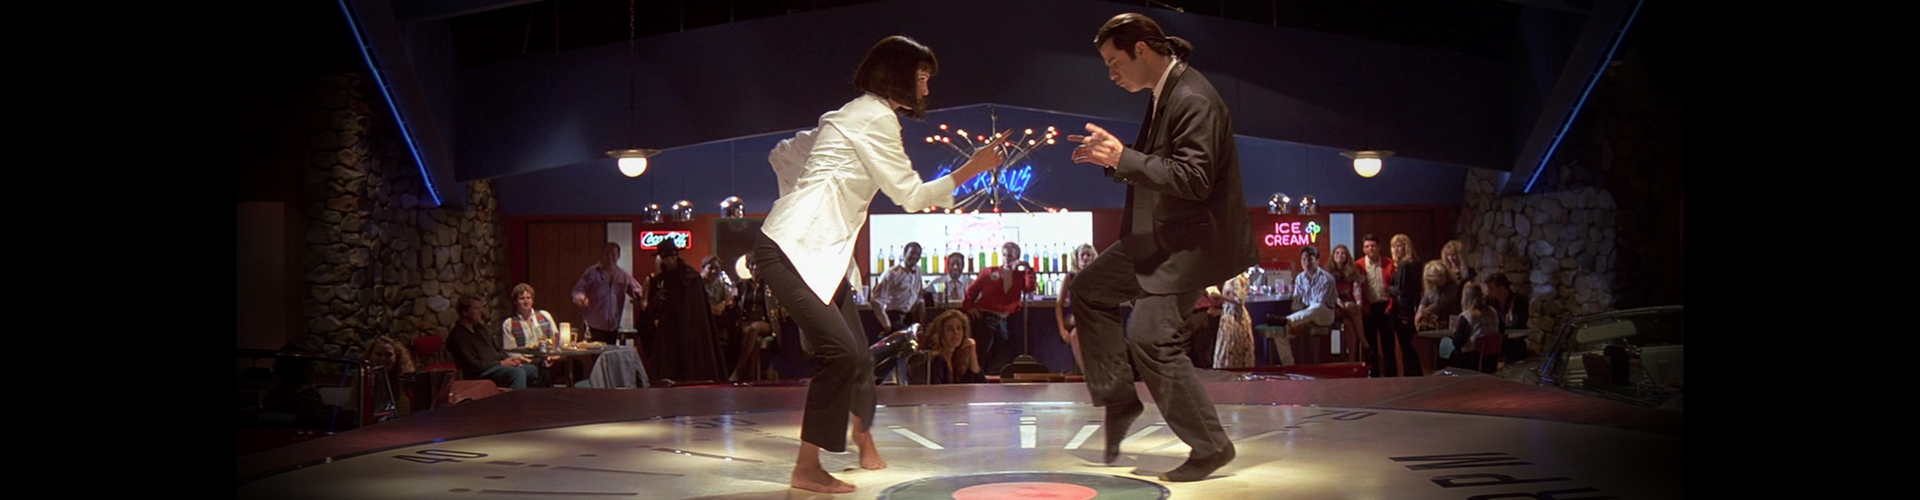 Pulp Fiction dancing copy.jpg